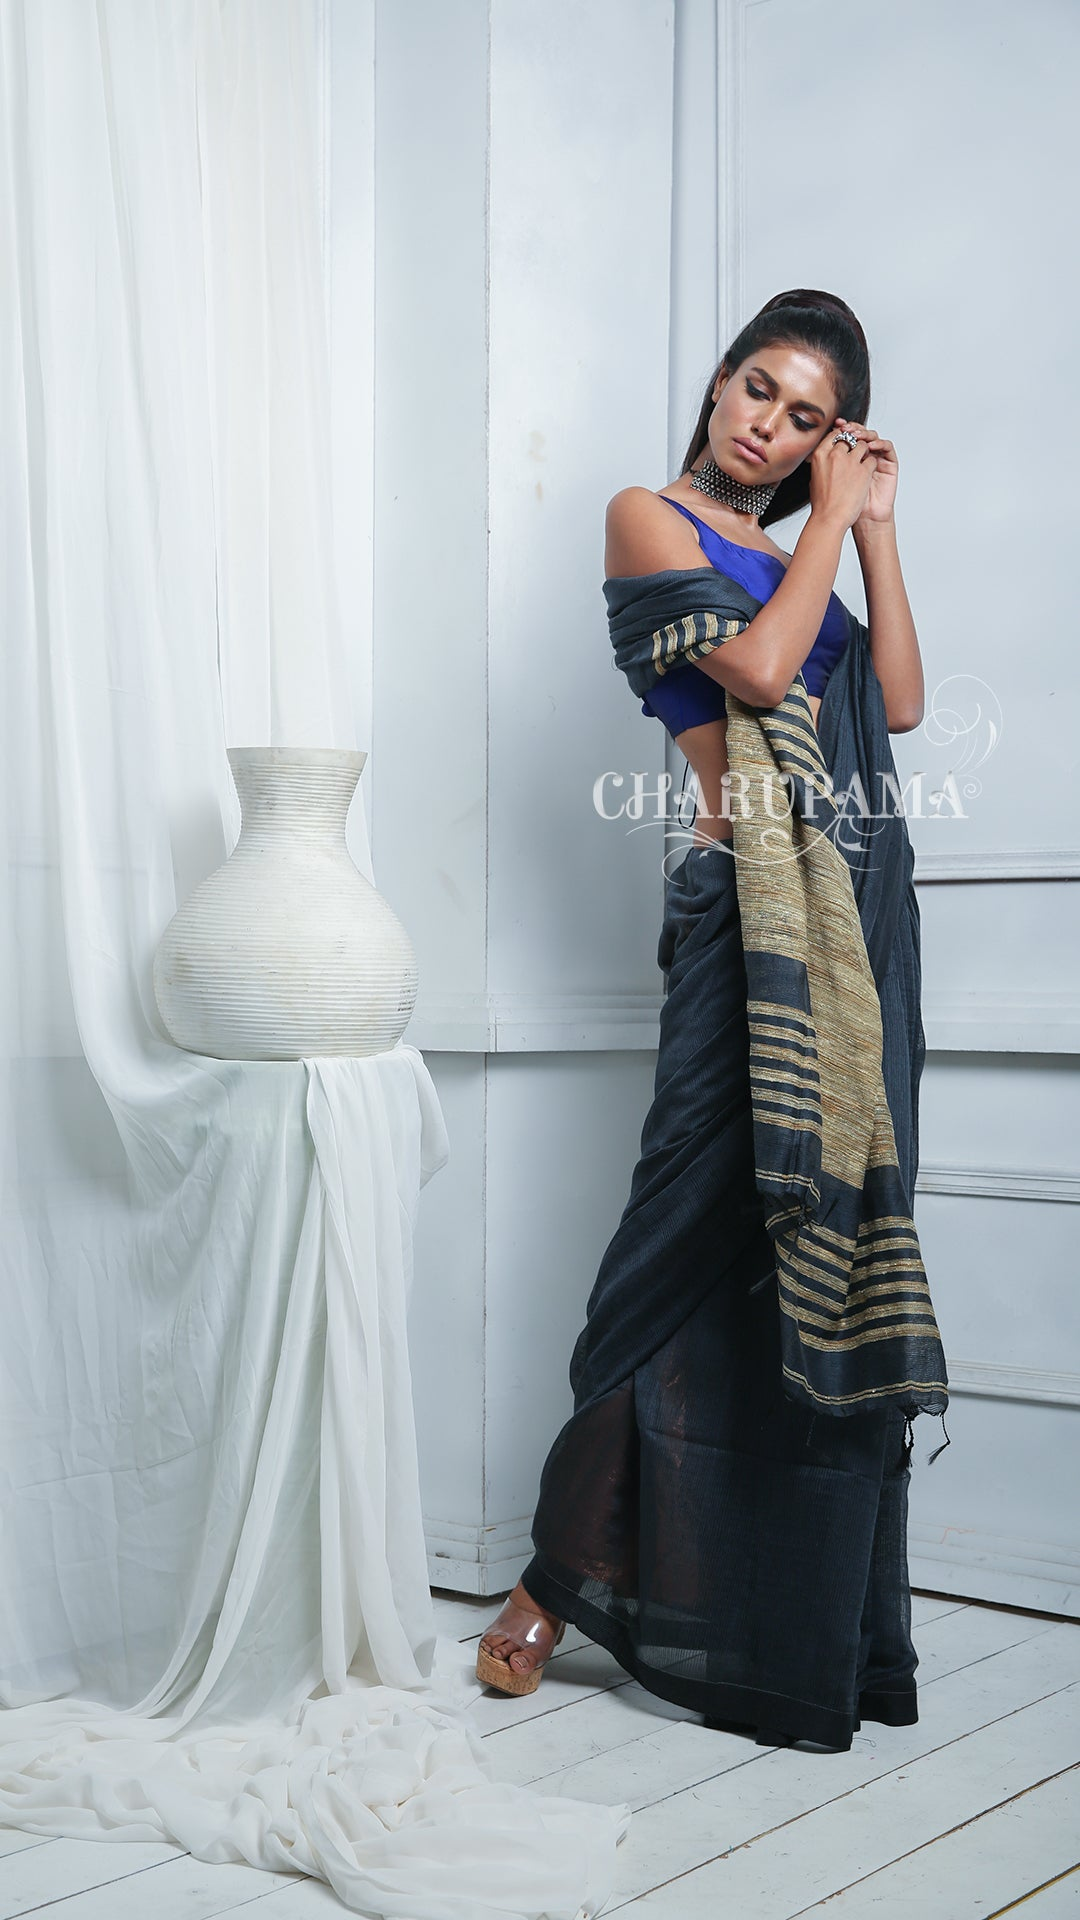 Unusual Shade Of Blue Blended Cotton Saree Brings You Comfort With Style. Perfect For Office, Daily Wear And Party Wear. Easy To Wash And Home Care.